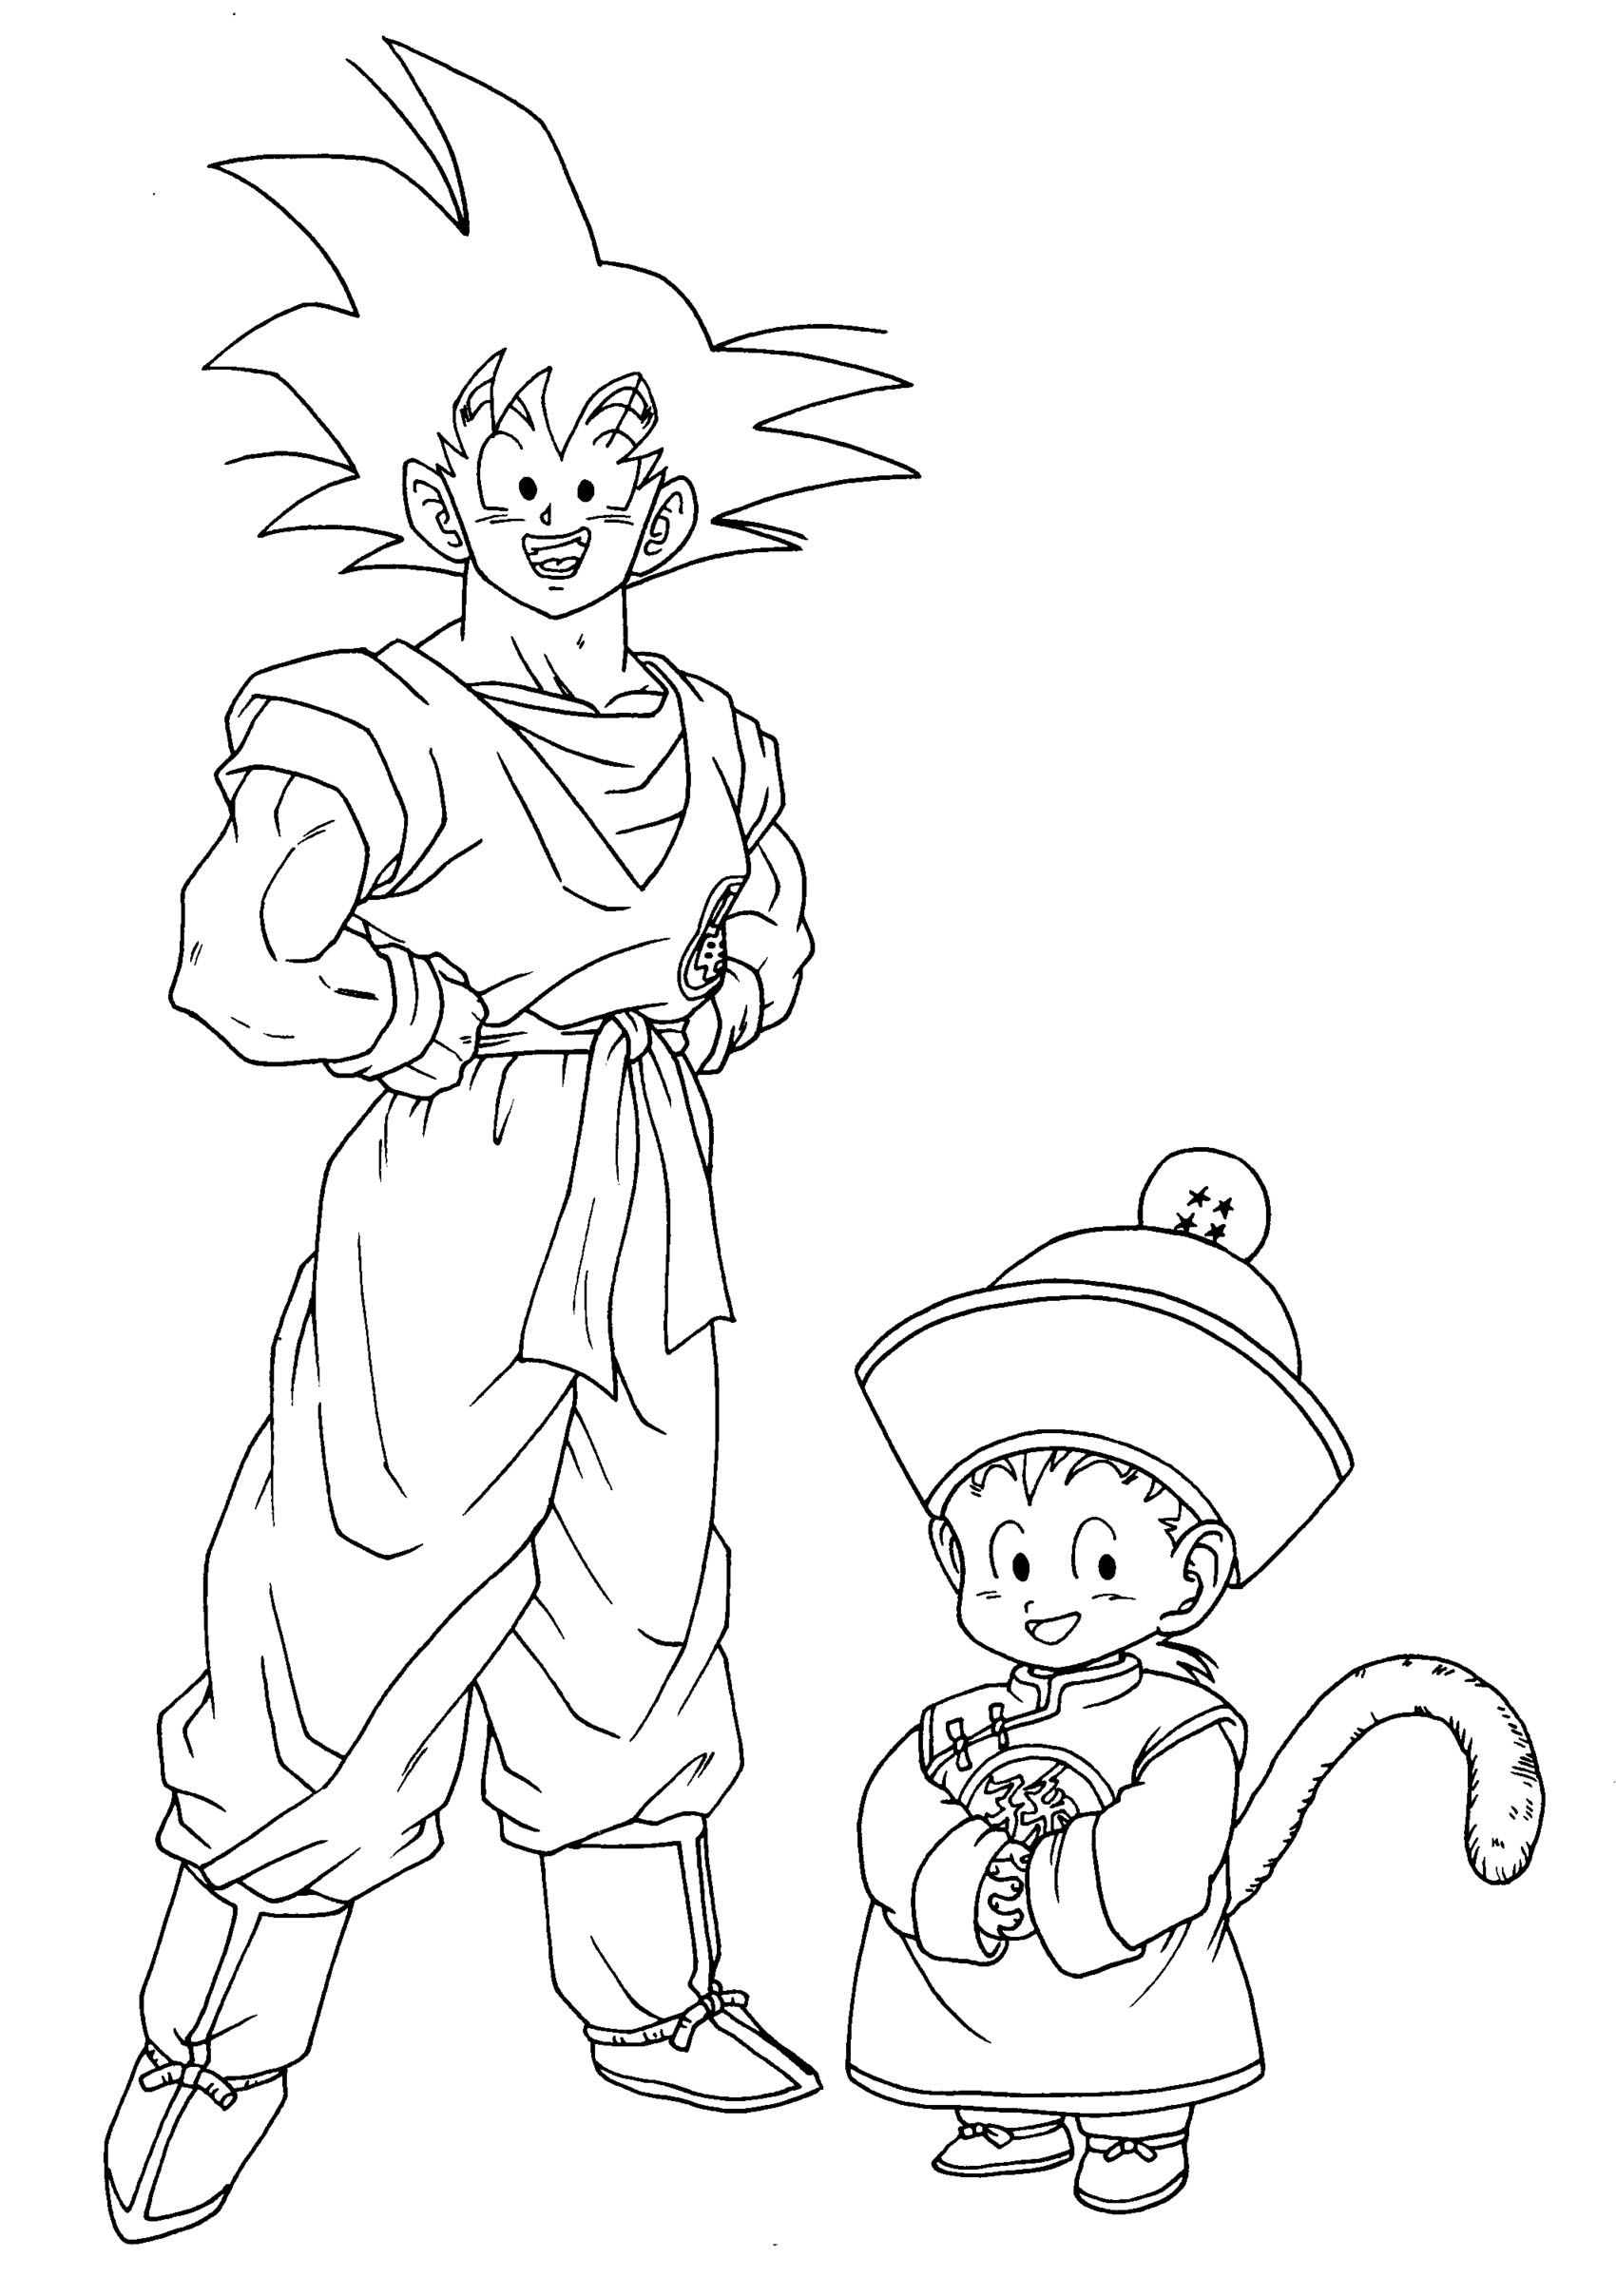 Coloriages dragon ball z 11 coloriage dragon ball z - Coloriage gratuit dragon ball z ...